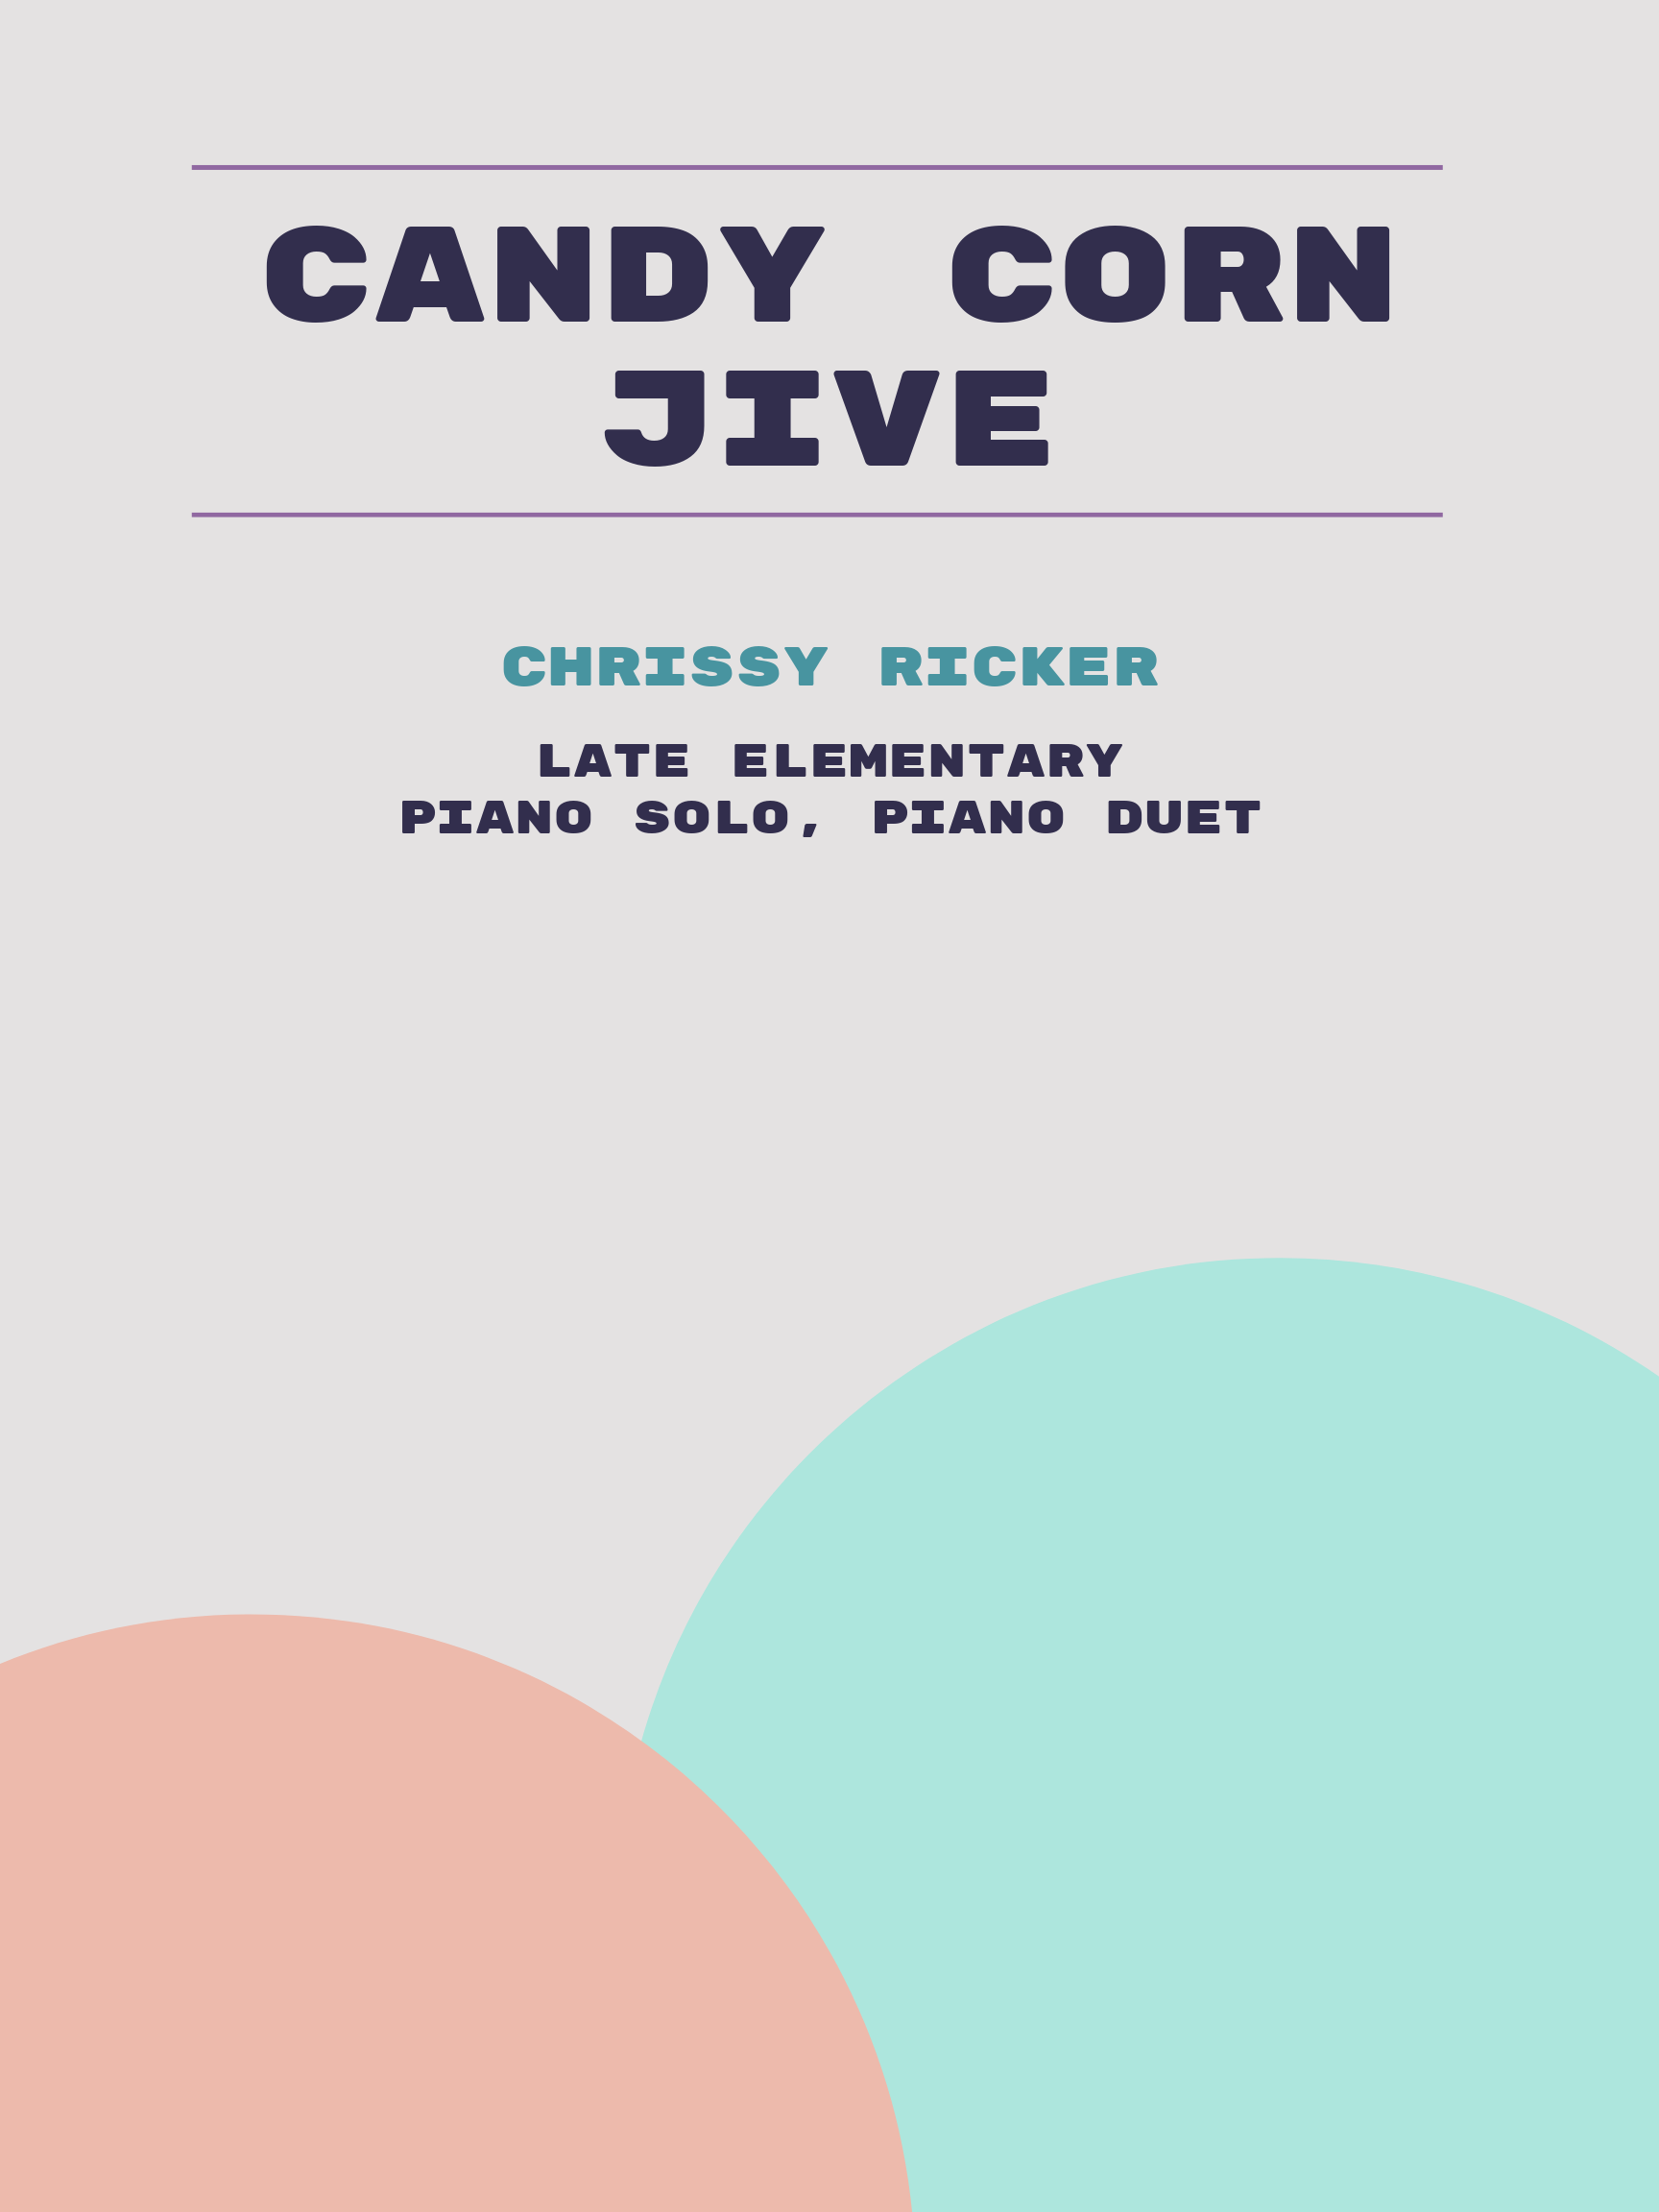 Candy Corn Jive by Chrissy Ricker